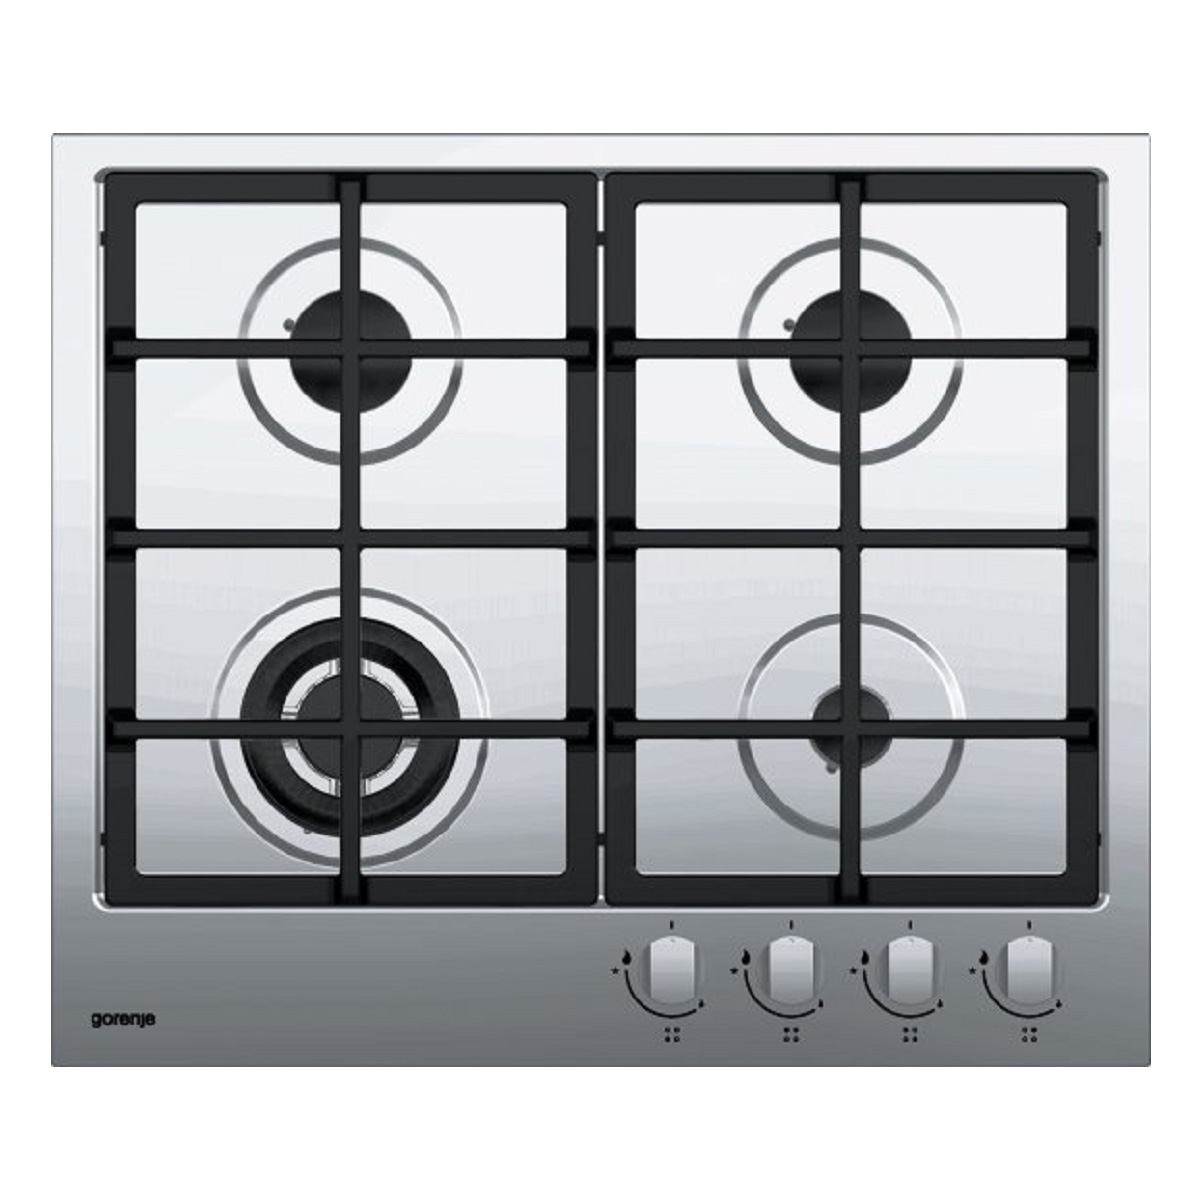 Westinghouse Gas Cooktop GHR12S. 4.8 From 5 Reviews. 28518